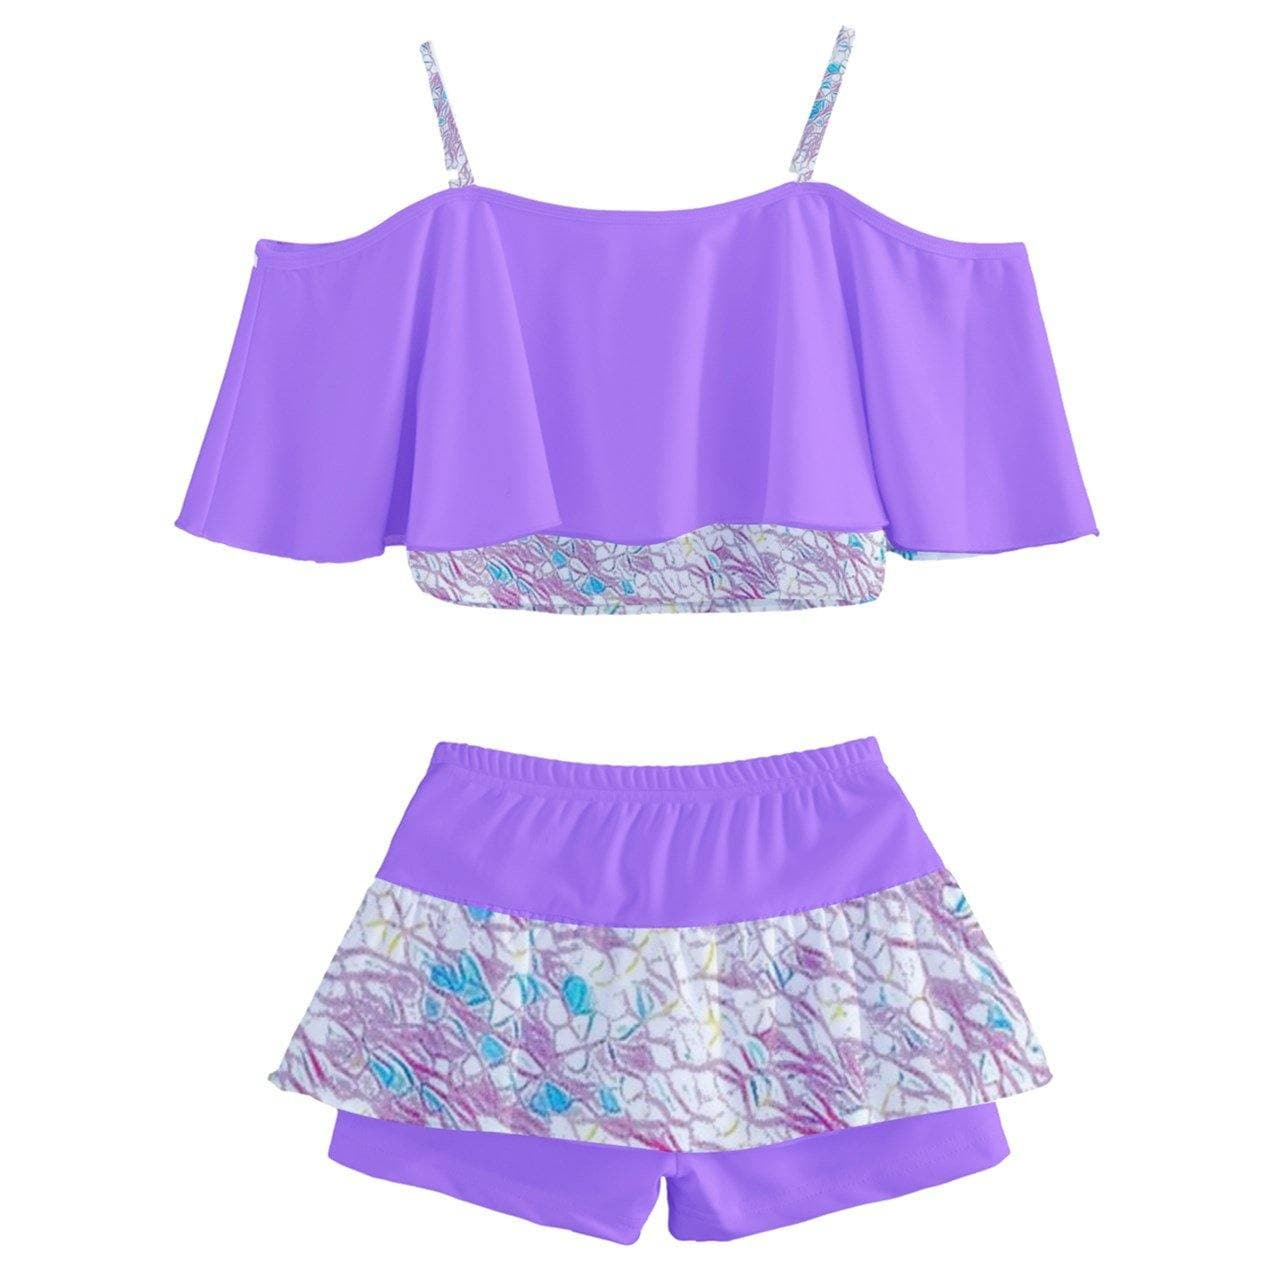 Royal Pallette Kids' Off Shoulder Skirt Bikini